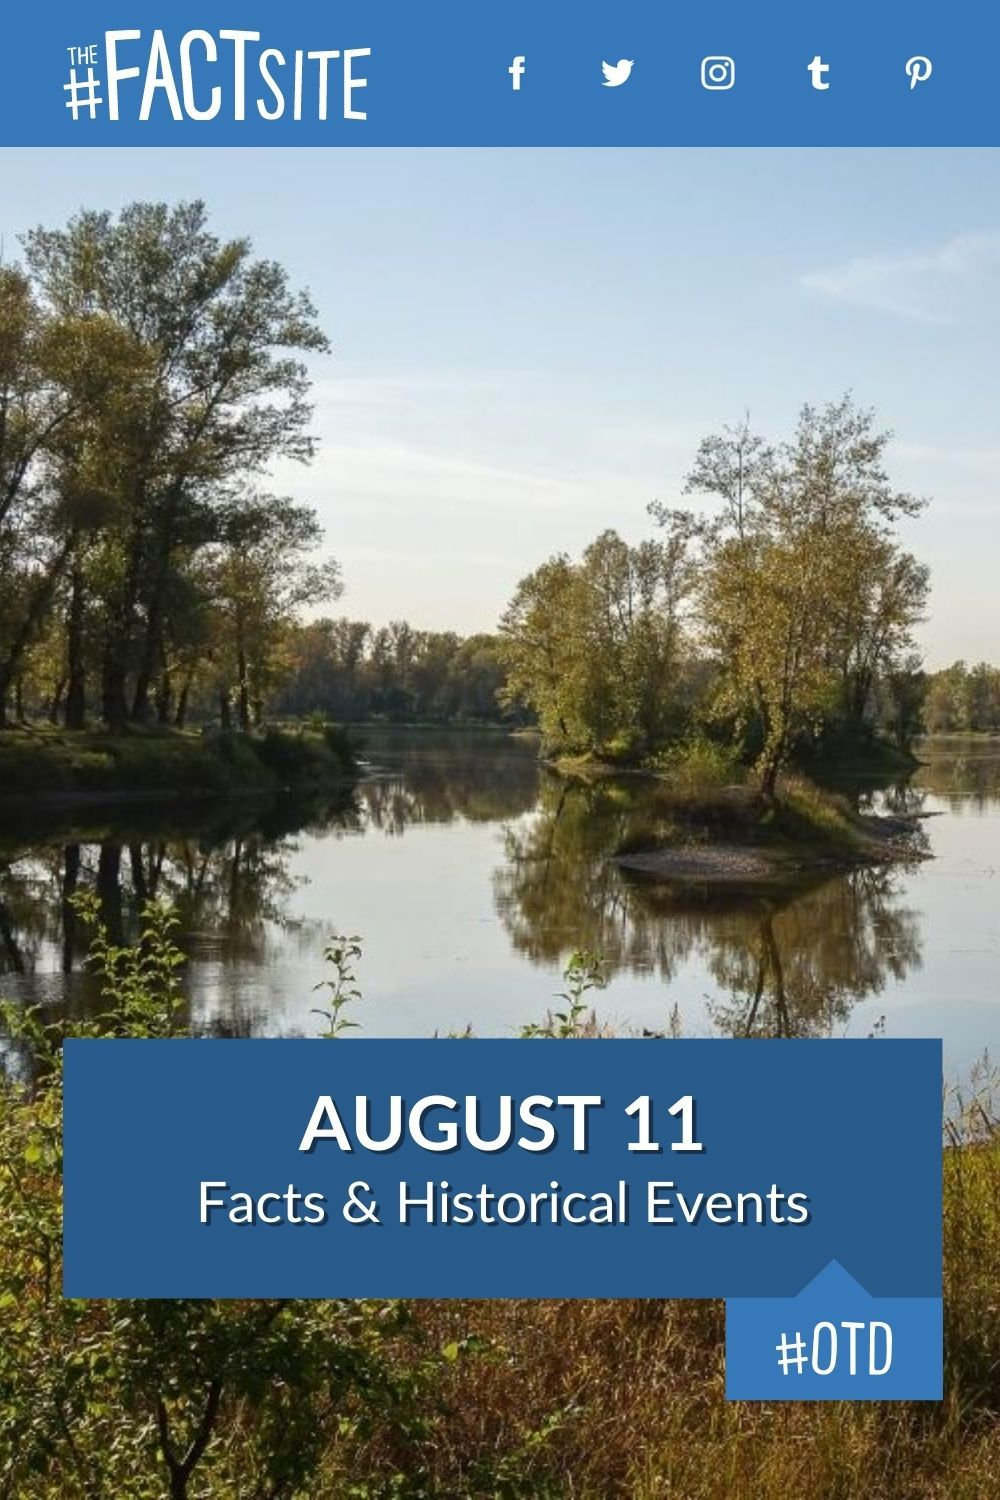 Facts & Historic Events That Happened on August 11